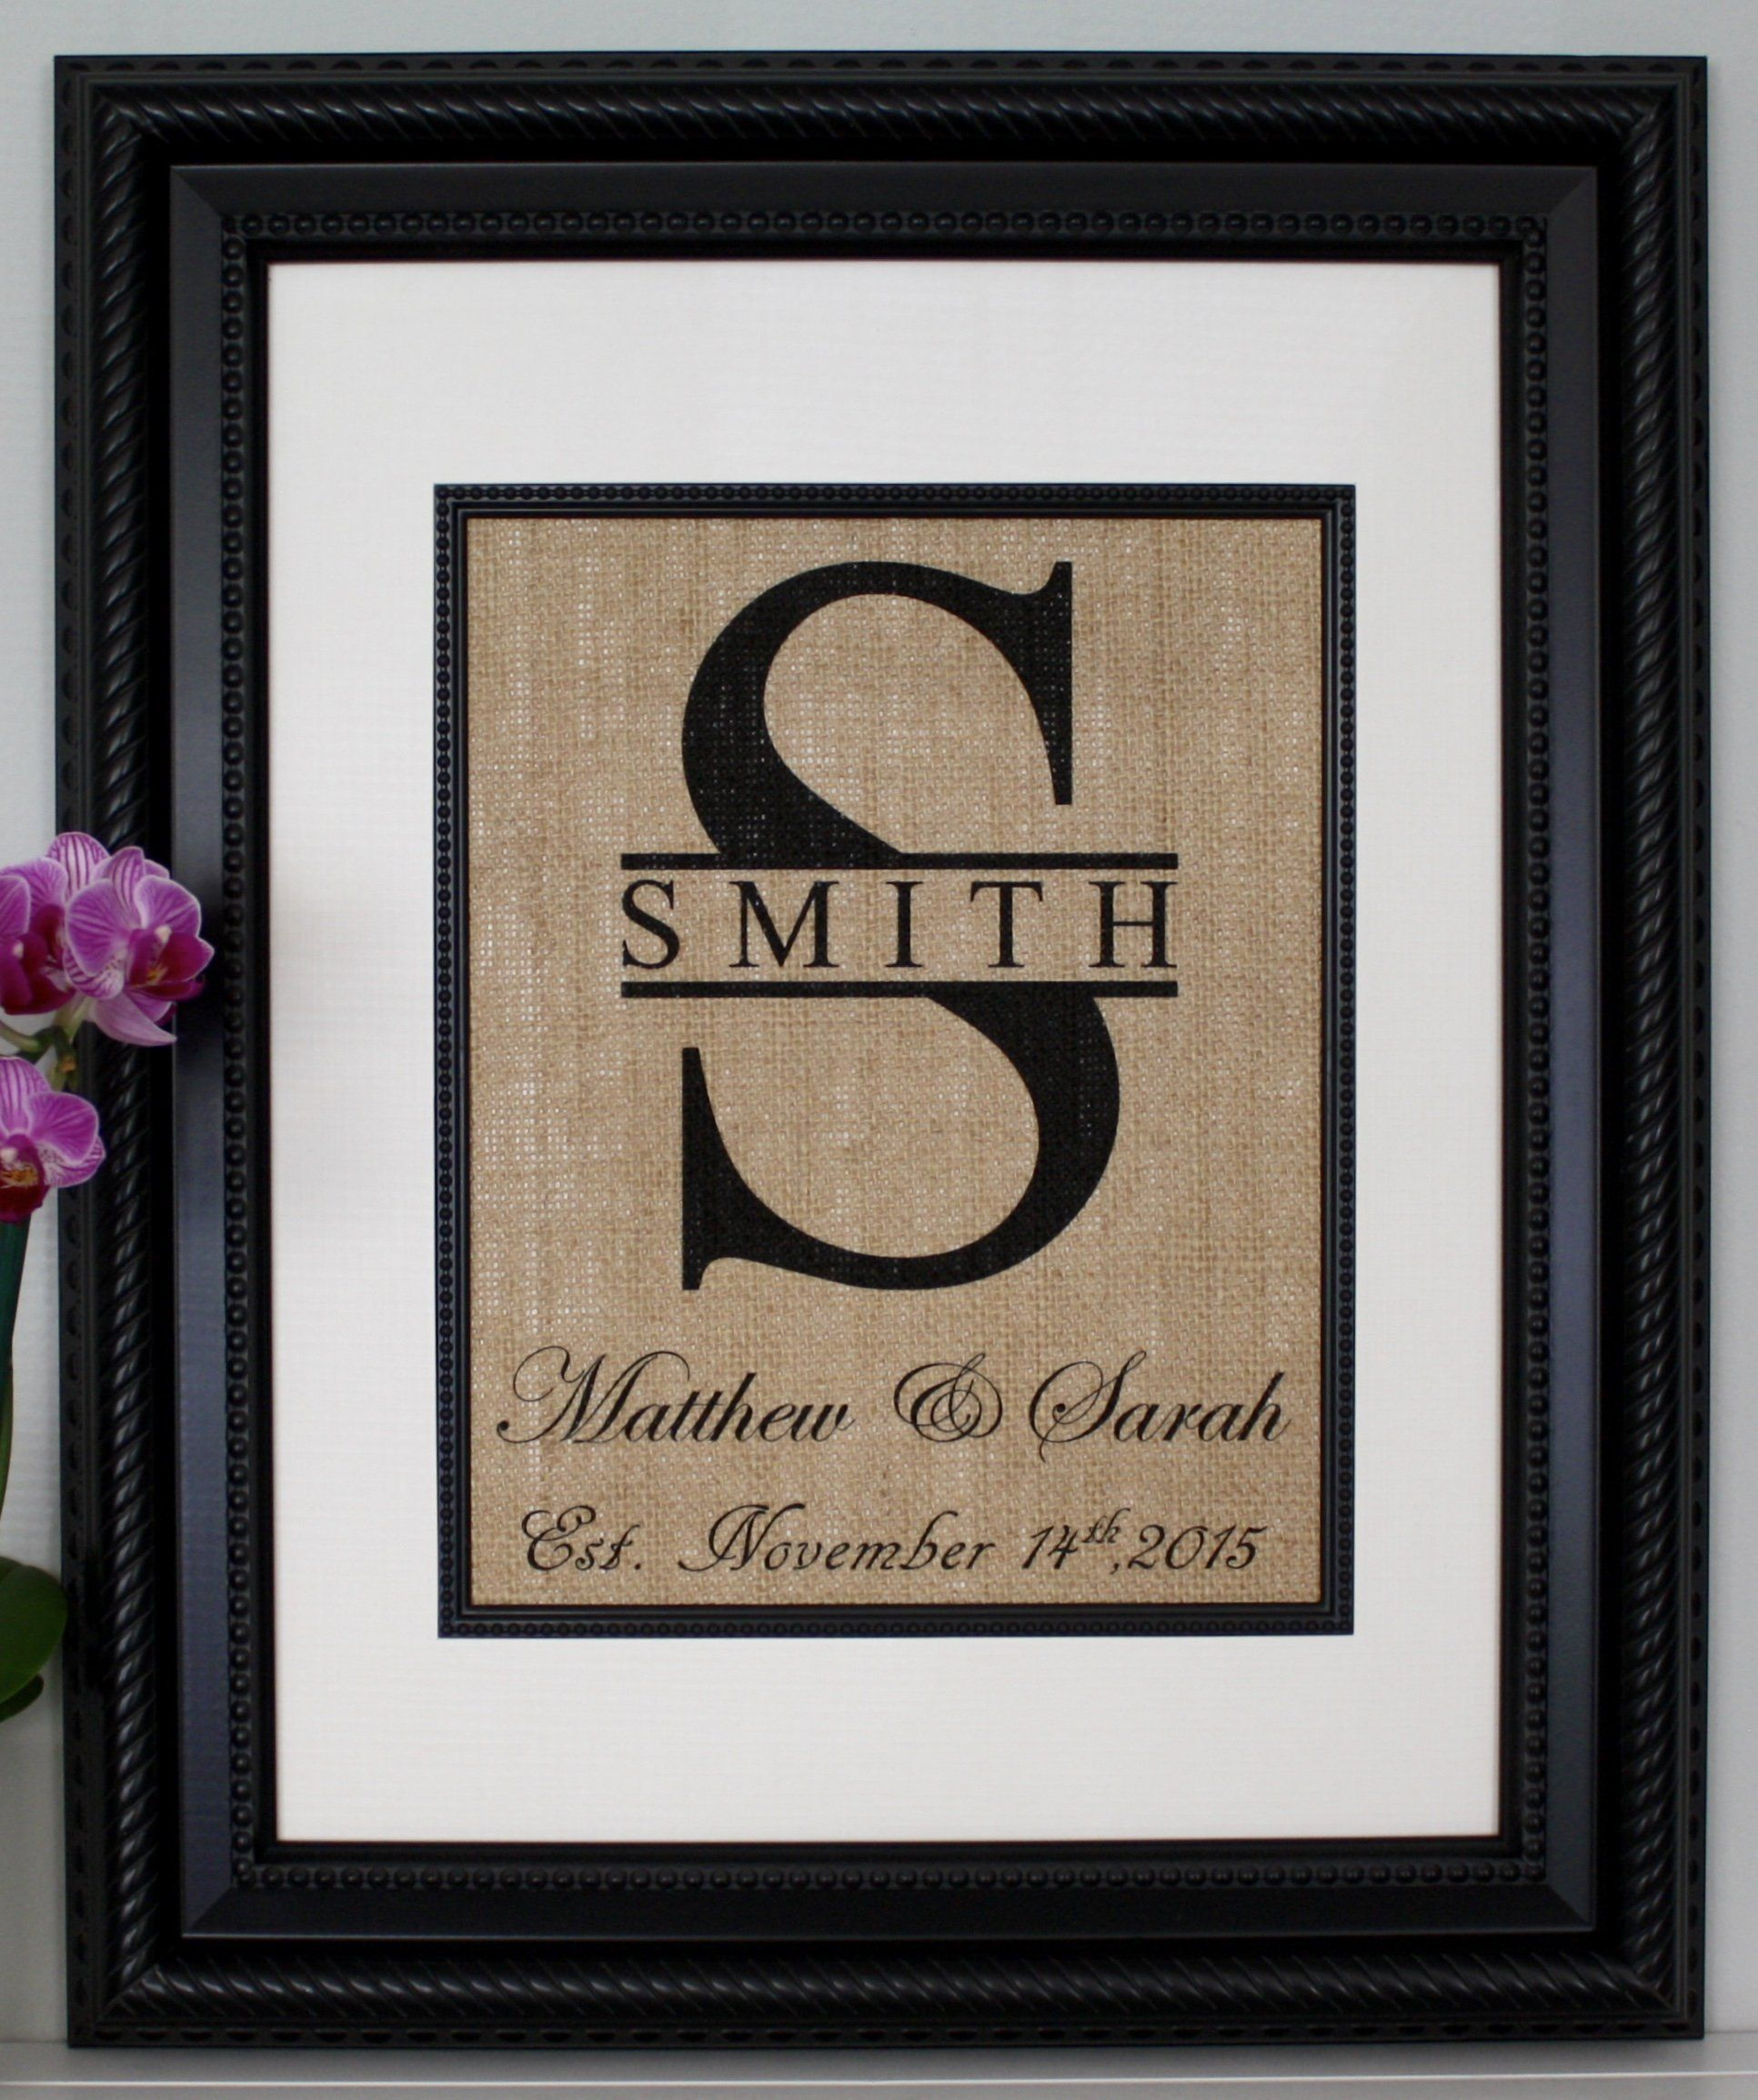 "Personalized Burlap Print, Wedding Monogram, Split Monogram, Burlap Sign with Family Name, Name of Couple, and Date Est. PRINT ONLY - frame is not included. We make these easy to frame. They are made to fit in a frame that is matted to 8""x10"" unless other size is requested. Split Monogram Wedding Print on Burlap - Personalized Makes the perfect gift for weddings, anniversaries, birthdays, etc…"